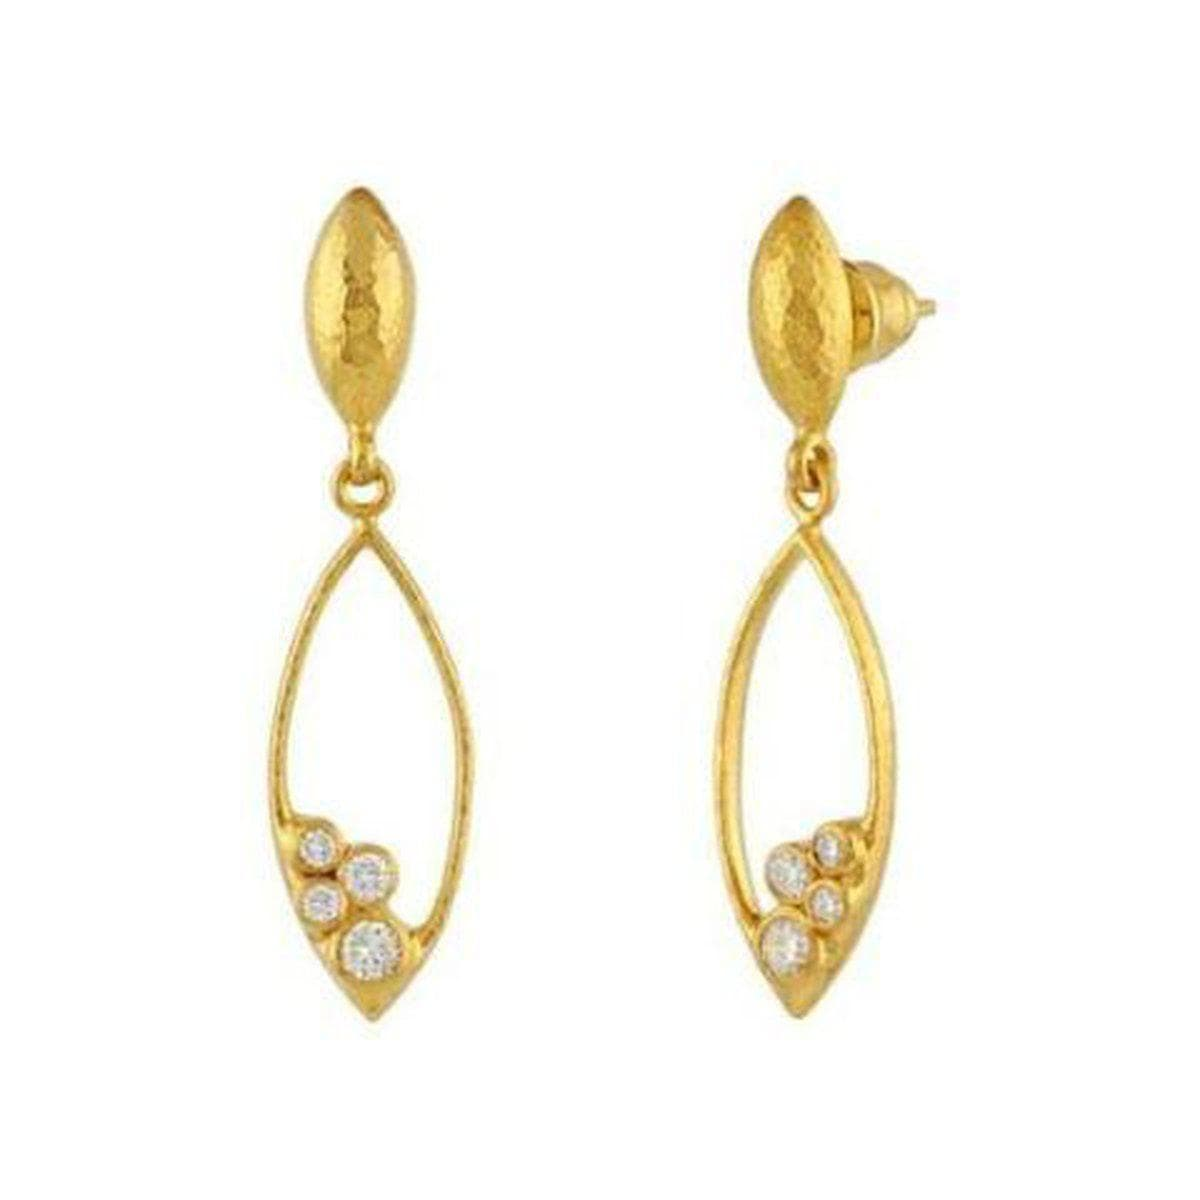 Pointelle 22K Gold White Diamond Earrings - OLE-SCTDI-MQ-S-HO-GURHAN-Renee Taylor Gallery